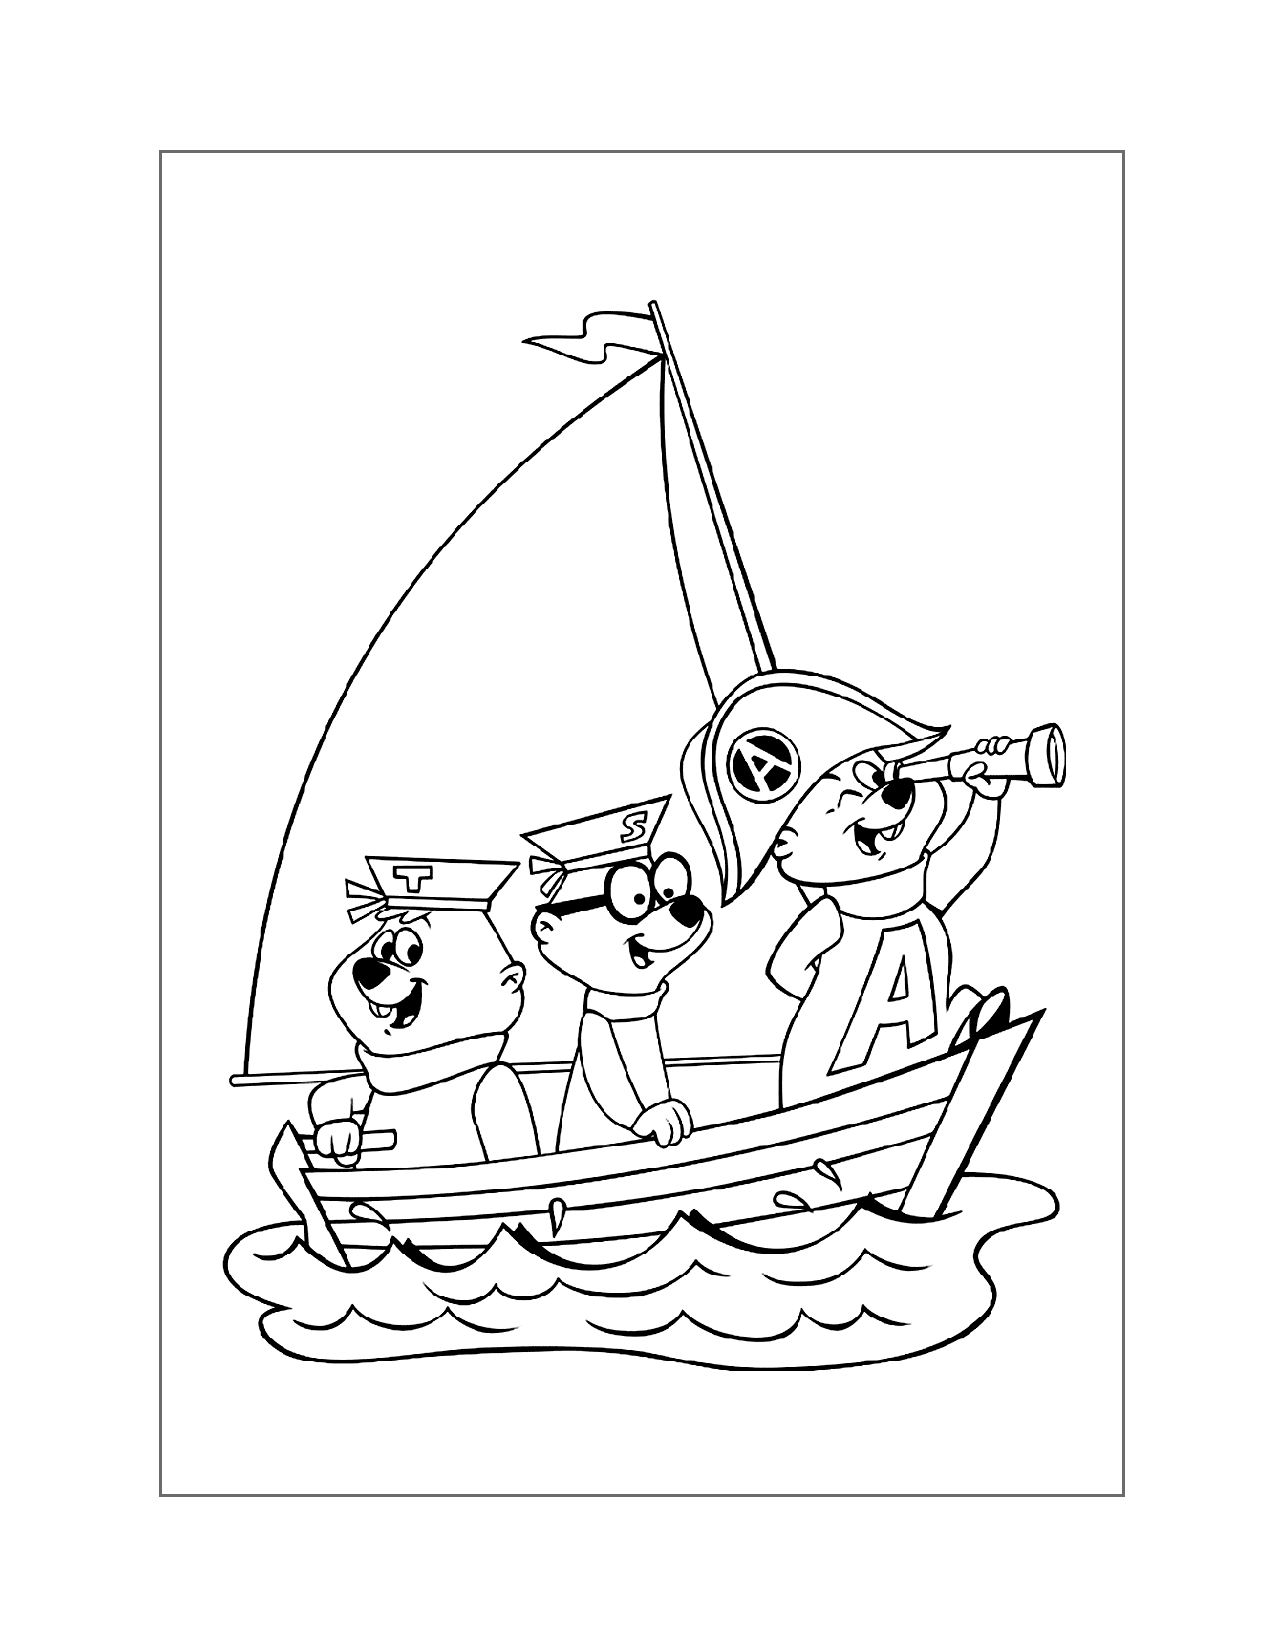 Chipmunks In A Boat Coloring Page